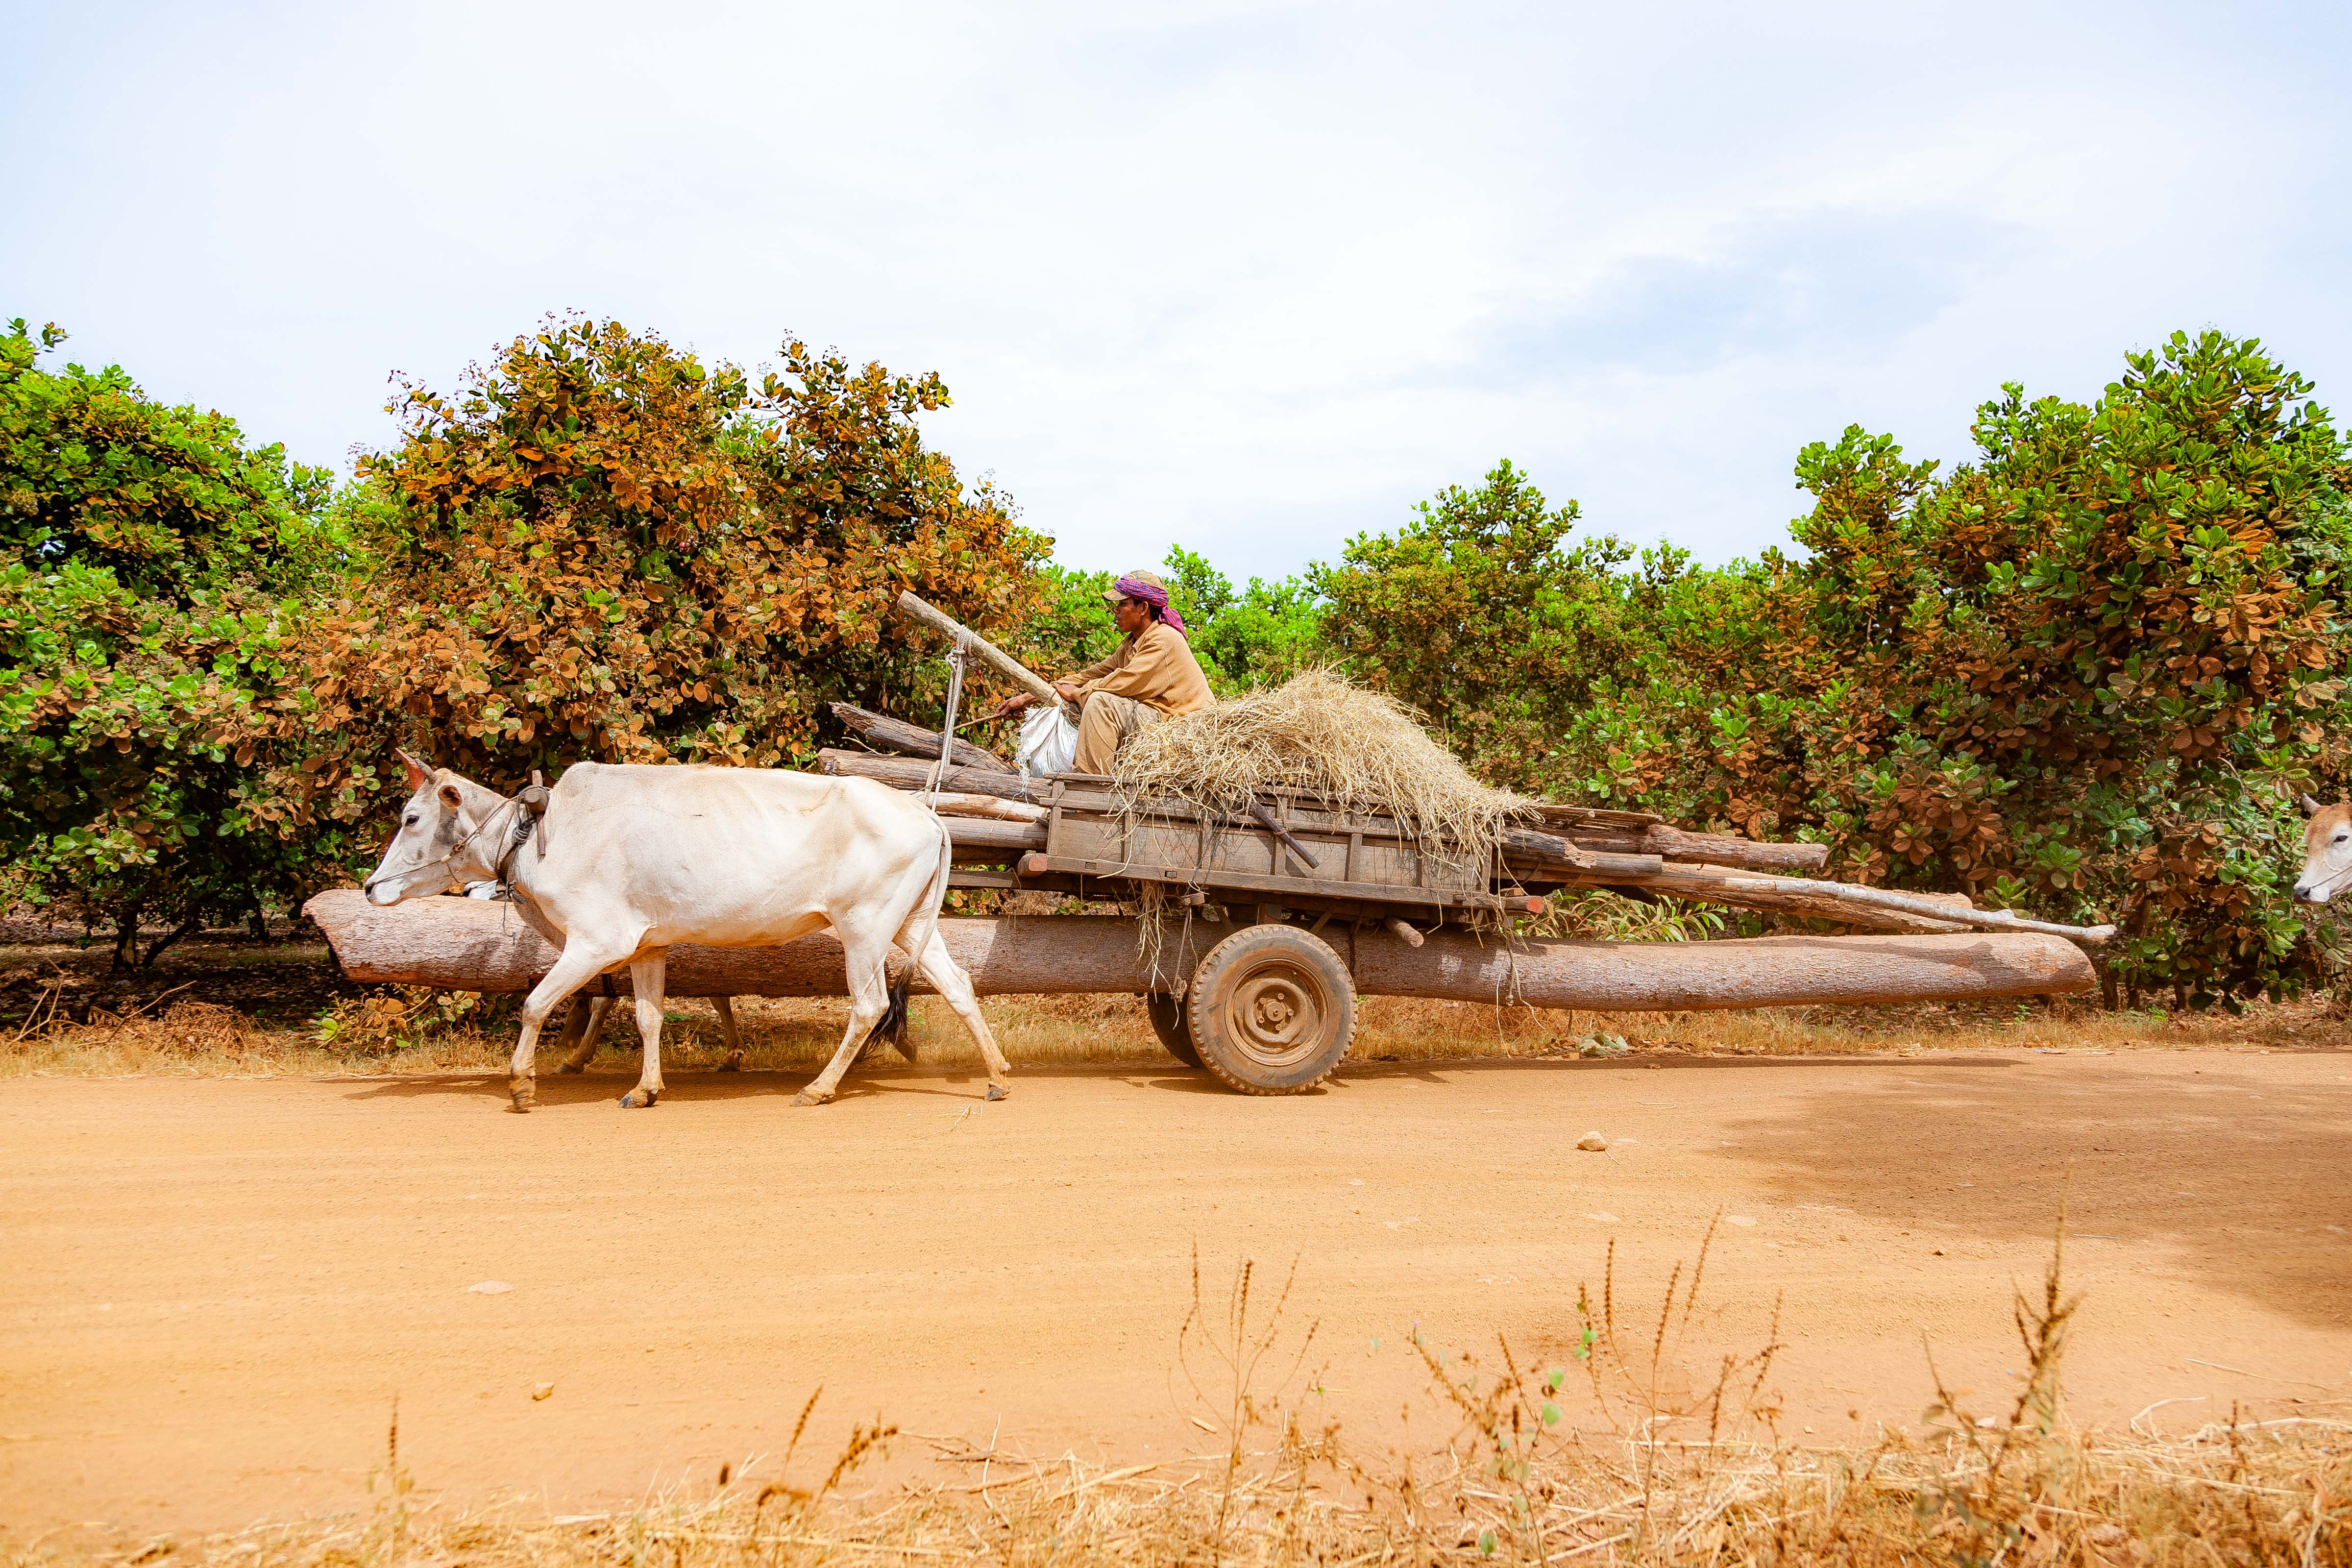 Cambodia, Kampong Chaam Prov, Cow Drawn Logging Cart, 2010, IMG 5430